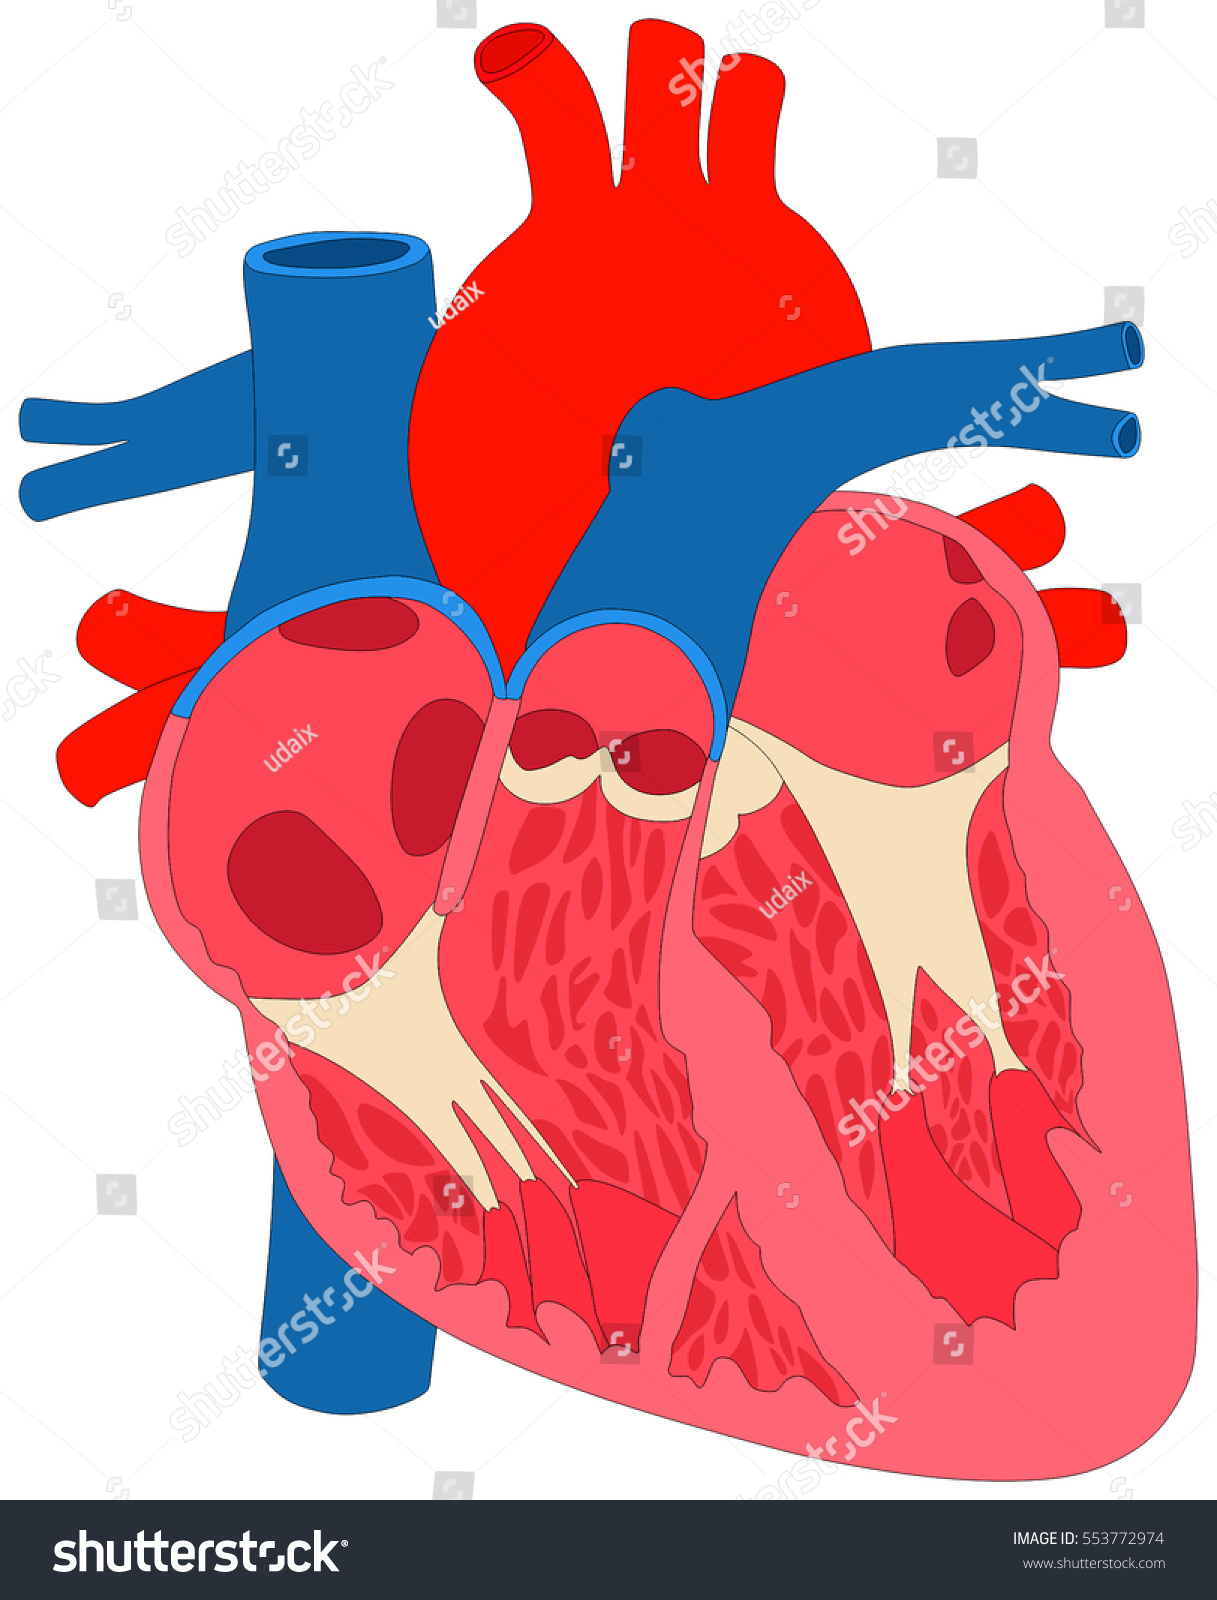 Human Heart Muscle Anatomy Cross Section Stock Illustration